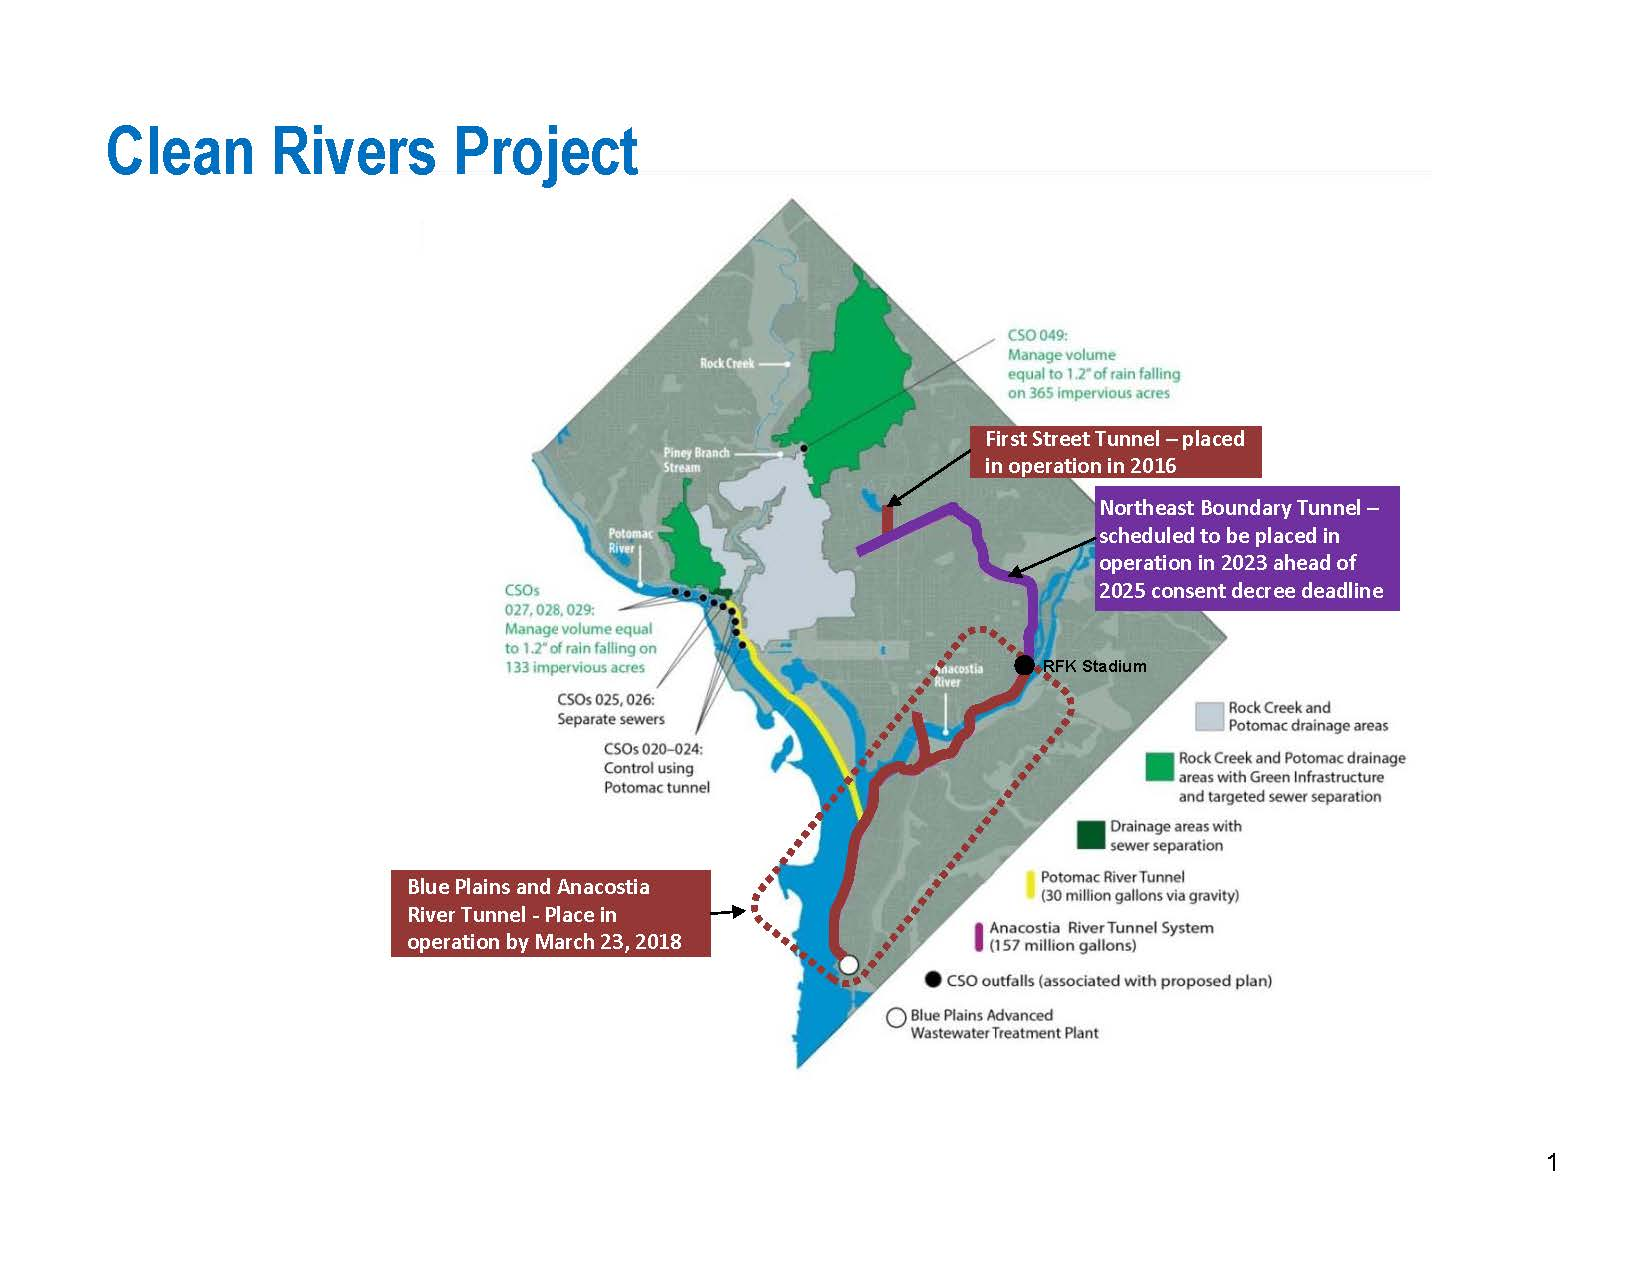 Diagram courtesy of DC Water.